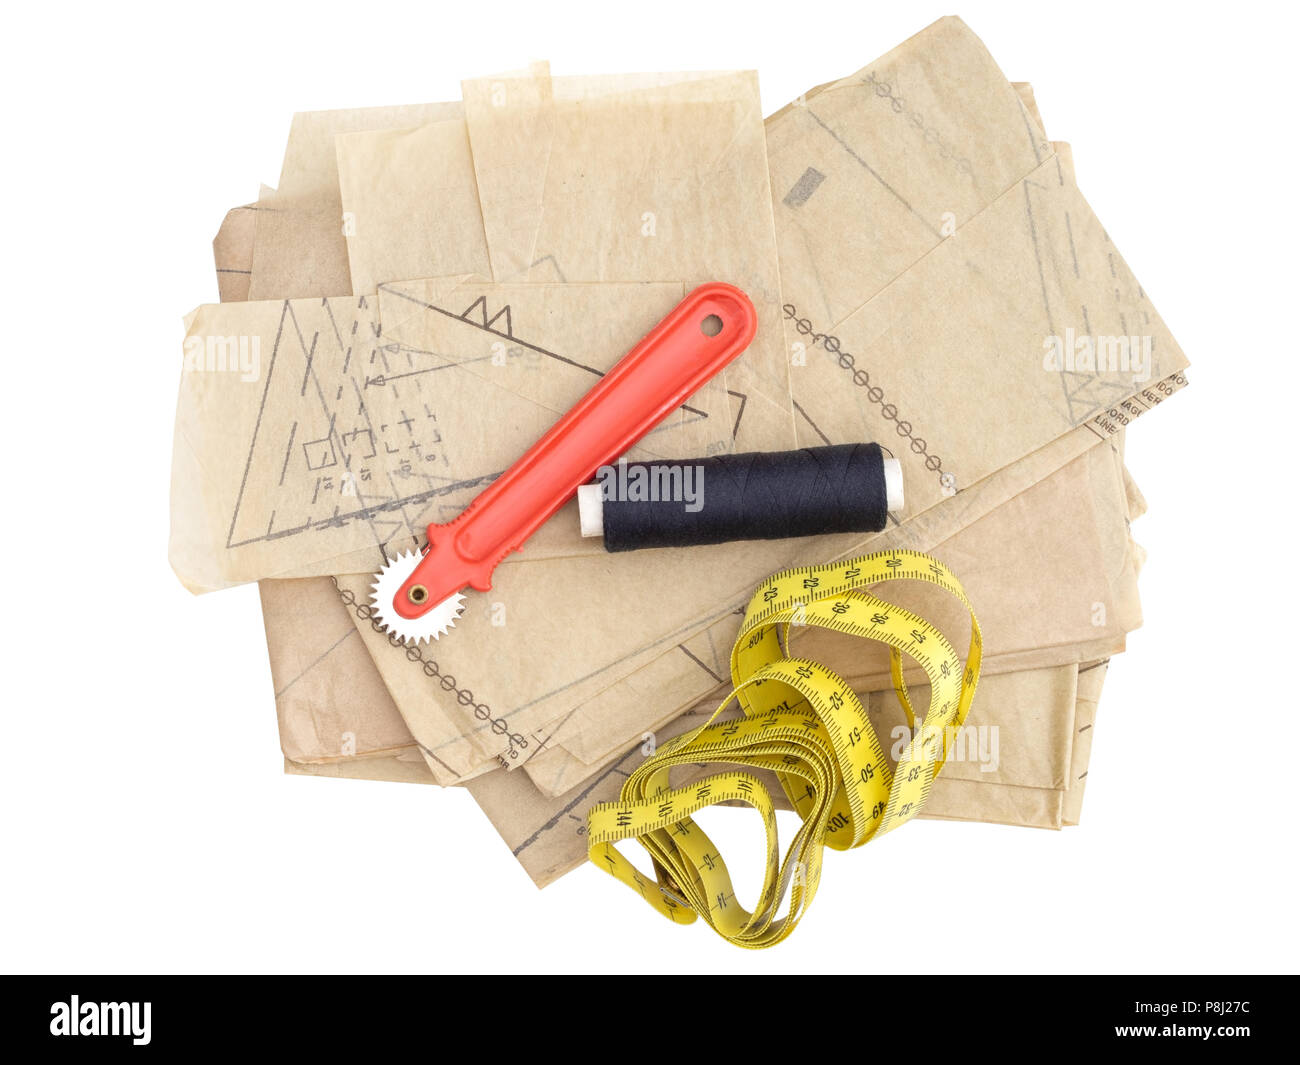 Dressmaking, sewing equipment isolated on white. Paper pattern thread, marker etc. - Stock Image